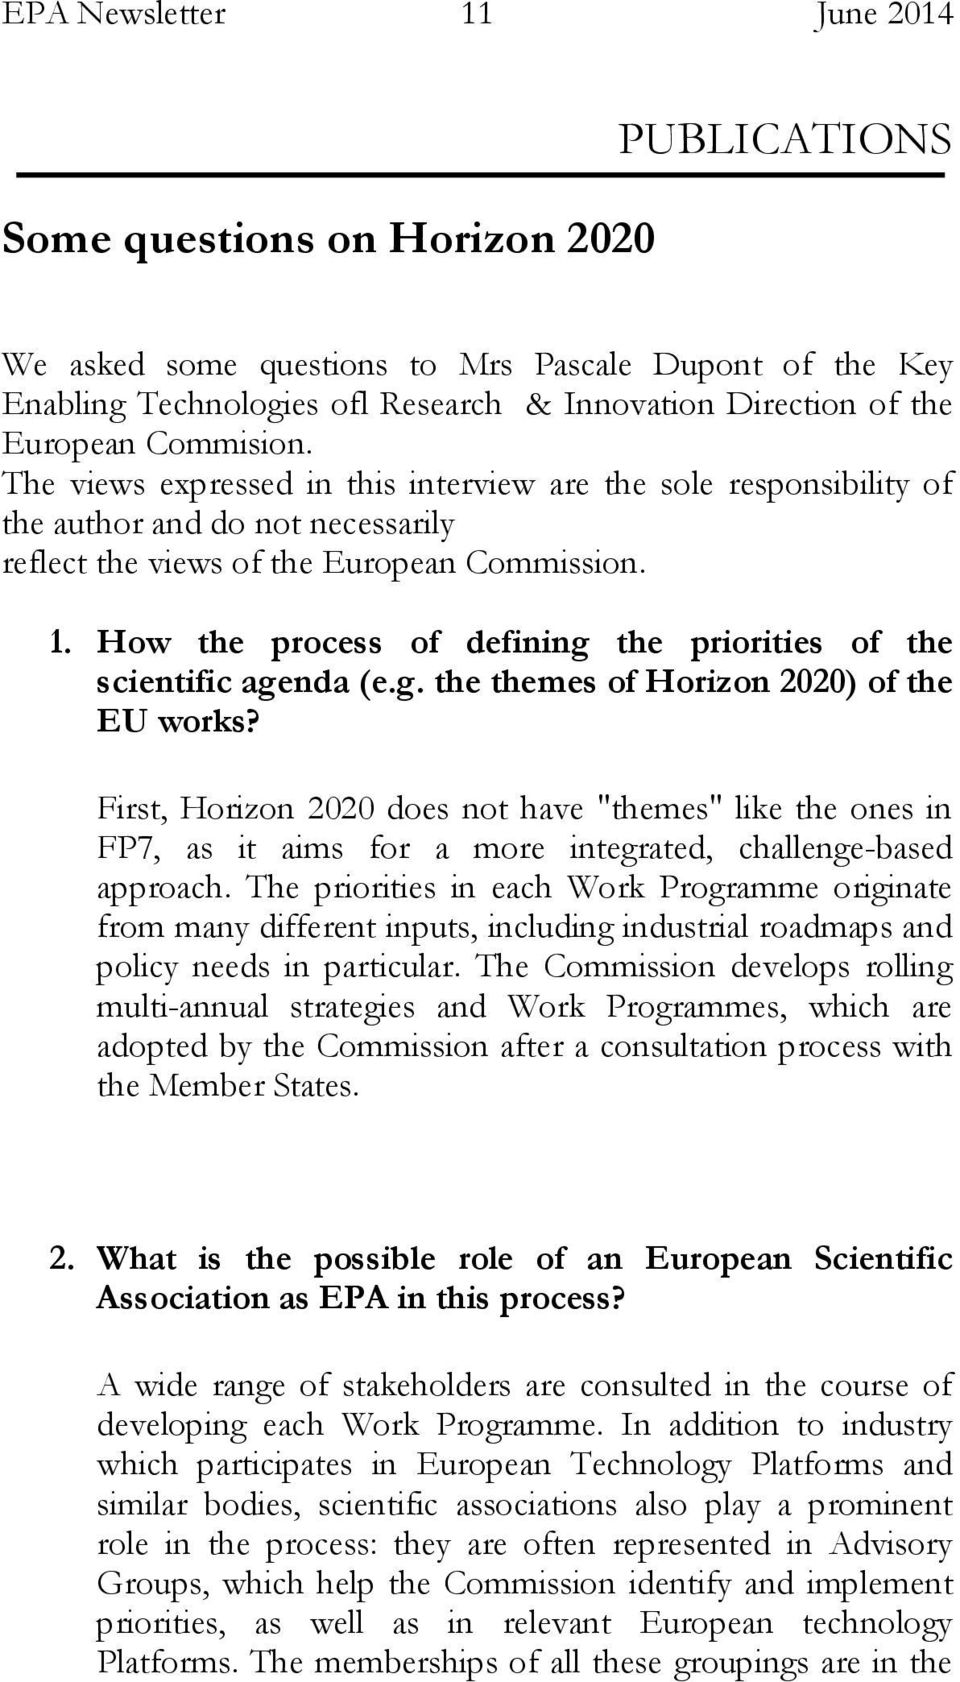 How the process of defining the priorities of the scientific agenda (e.g. the themes of Horizon 2020) of the EU works?